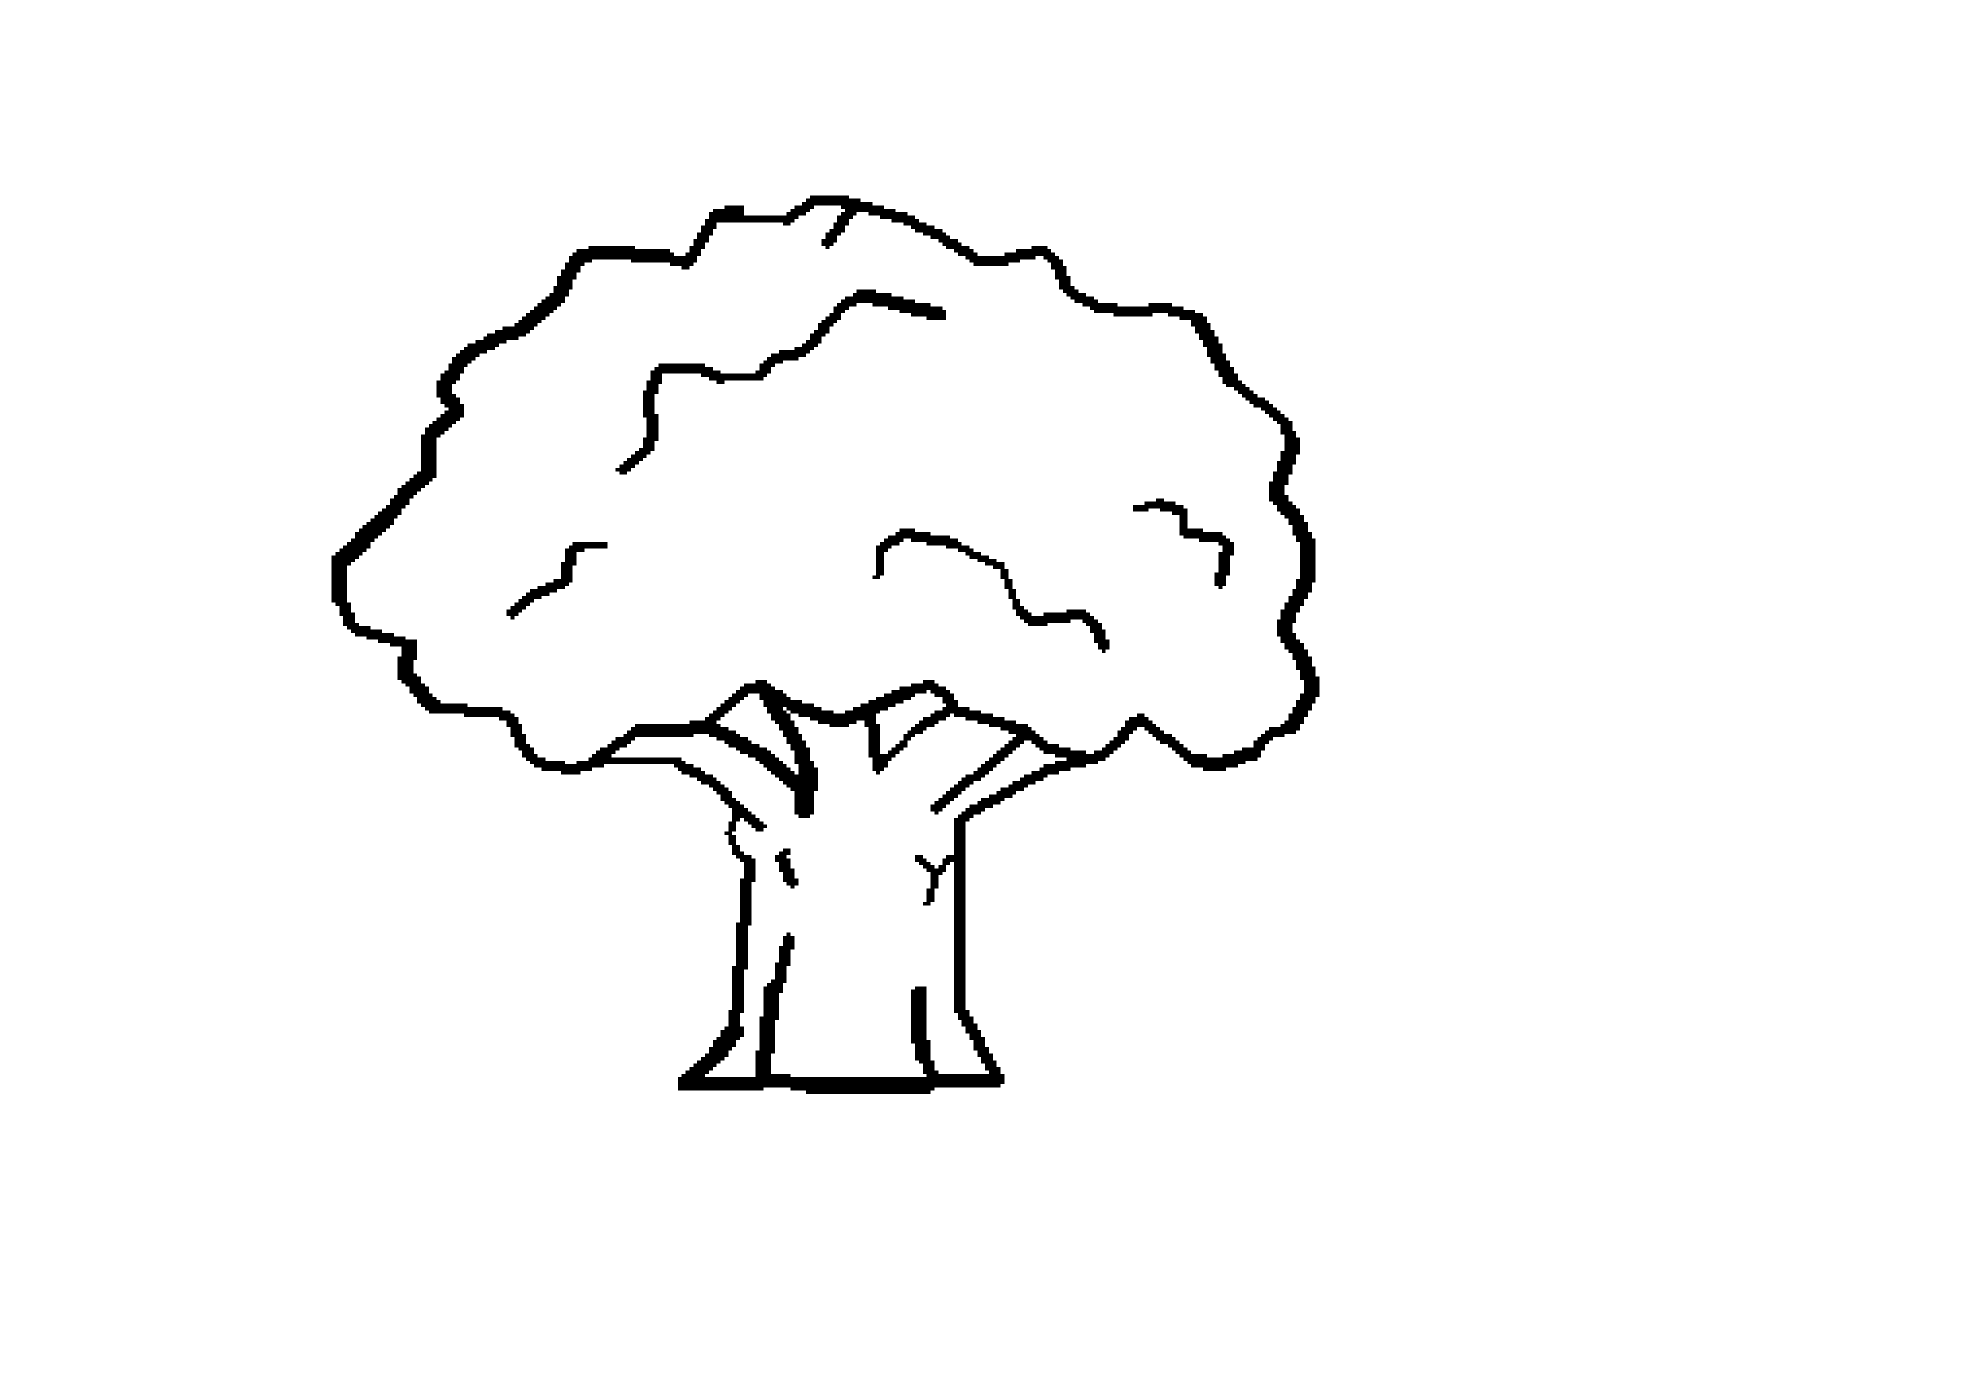 Tree Clipart Black And White  - Tree Clip Art Black And White